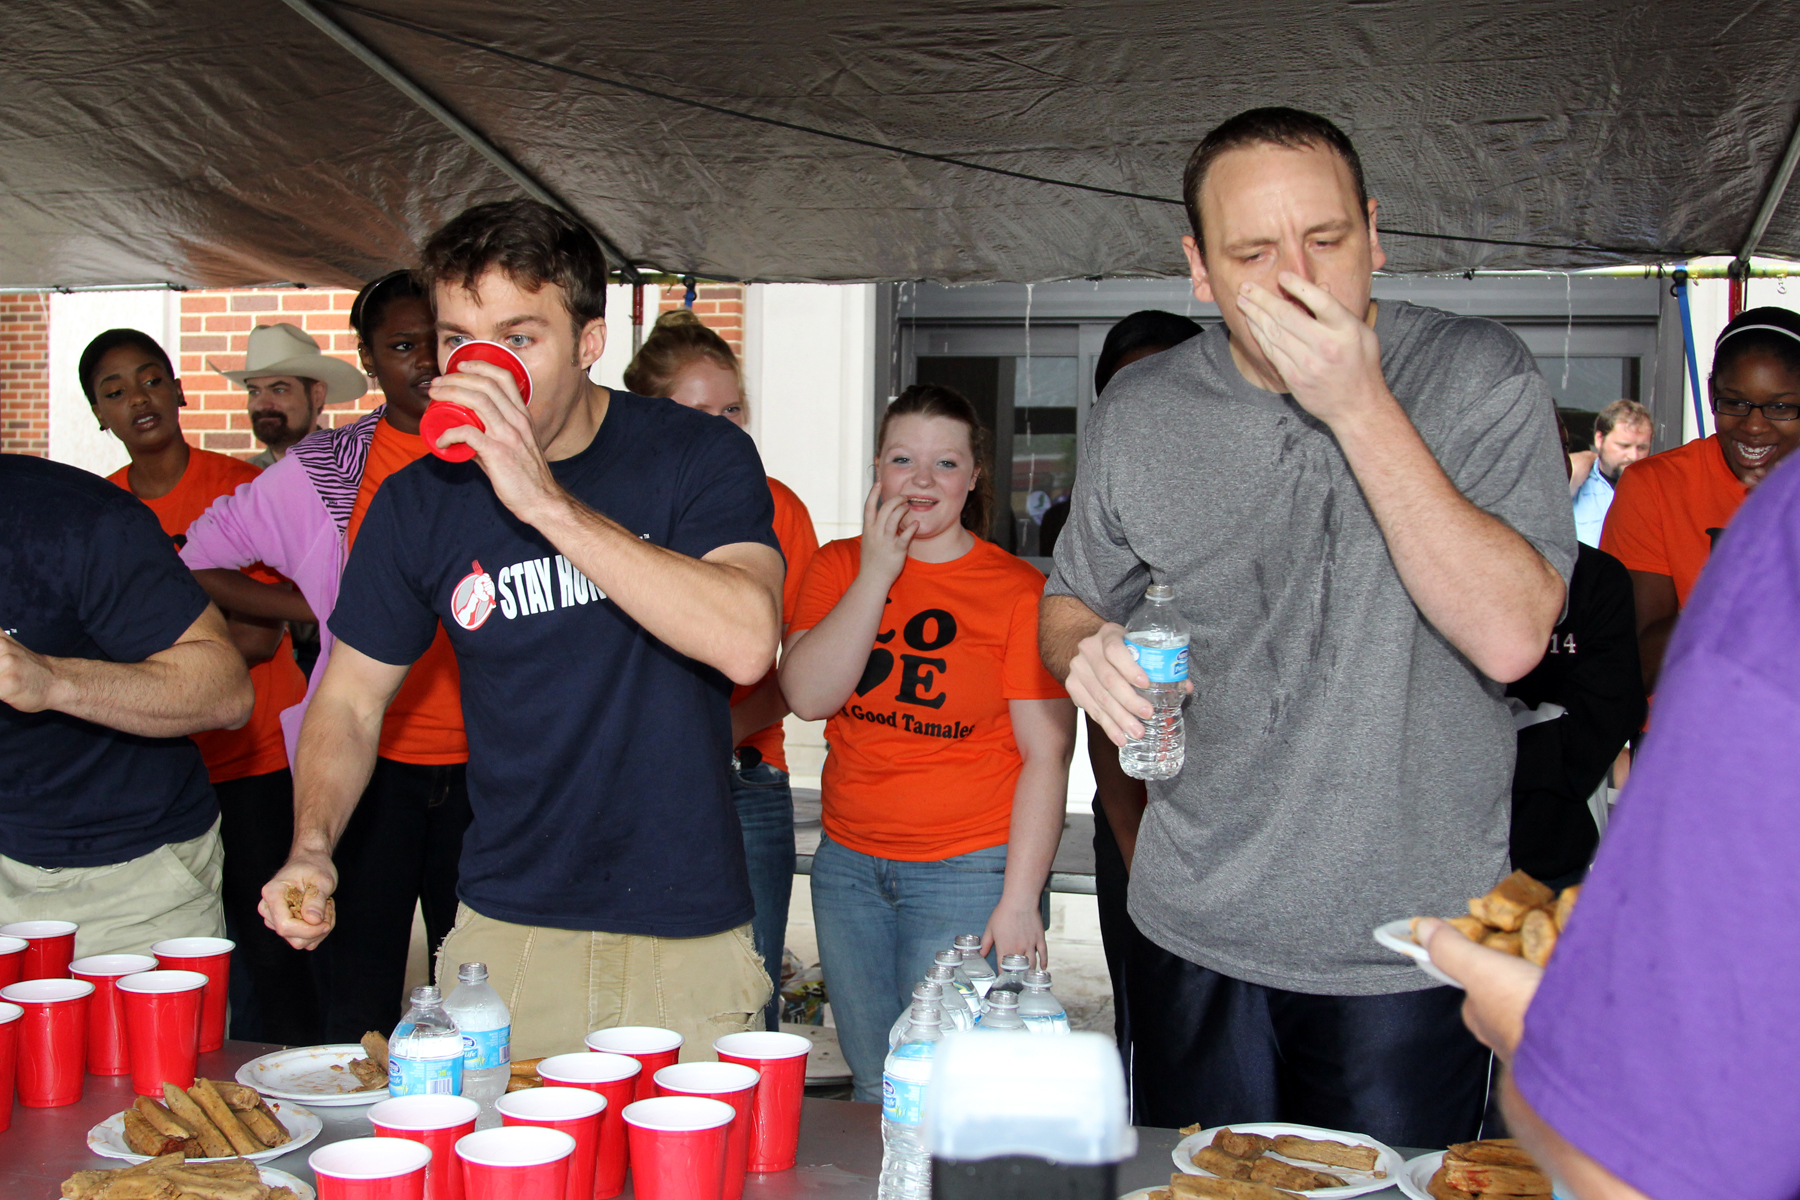 'Jaws' tastes victory at World Tamale Eating Championship in Lewisville